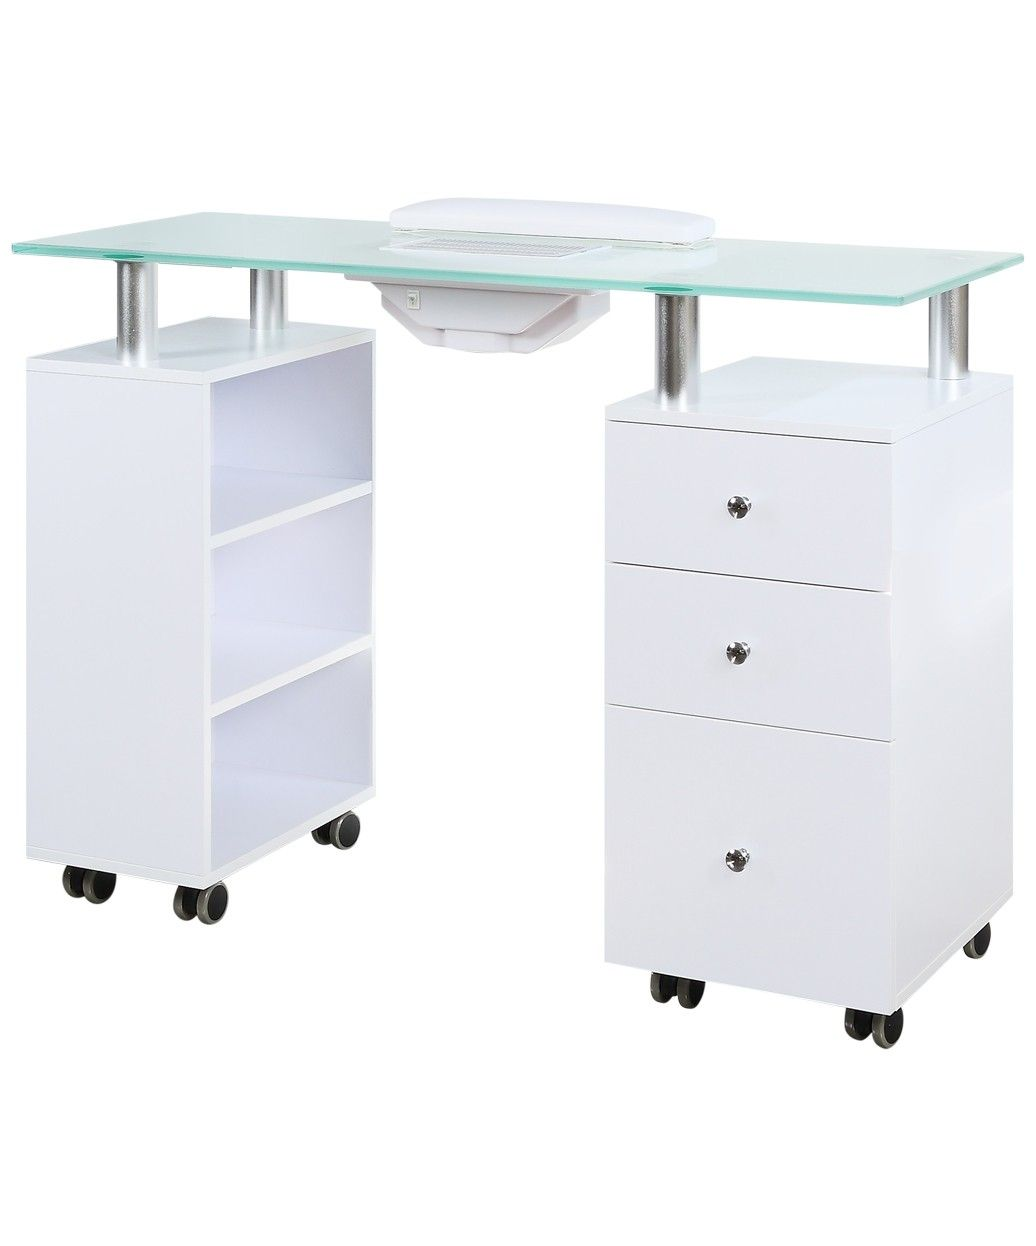 J A Manicure Nail Table With Vent Glass Top By Buy Rite Manicure Table Open Cabinets Glass Top